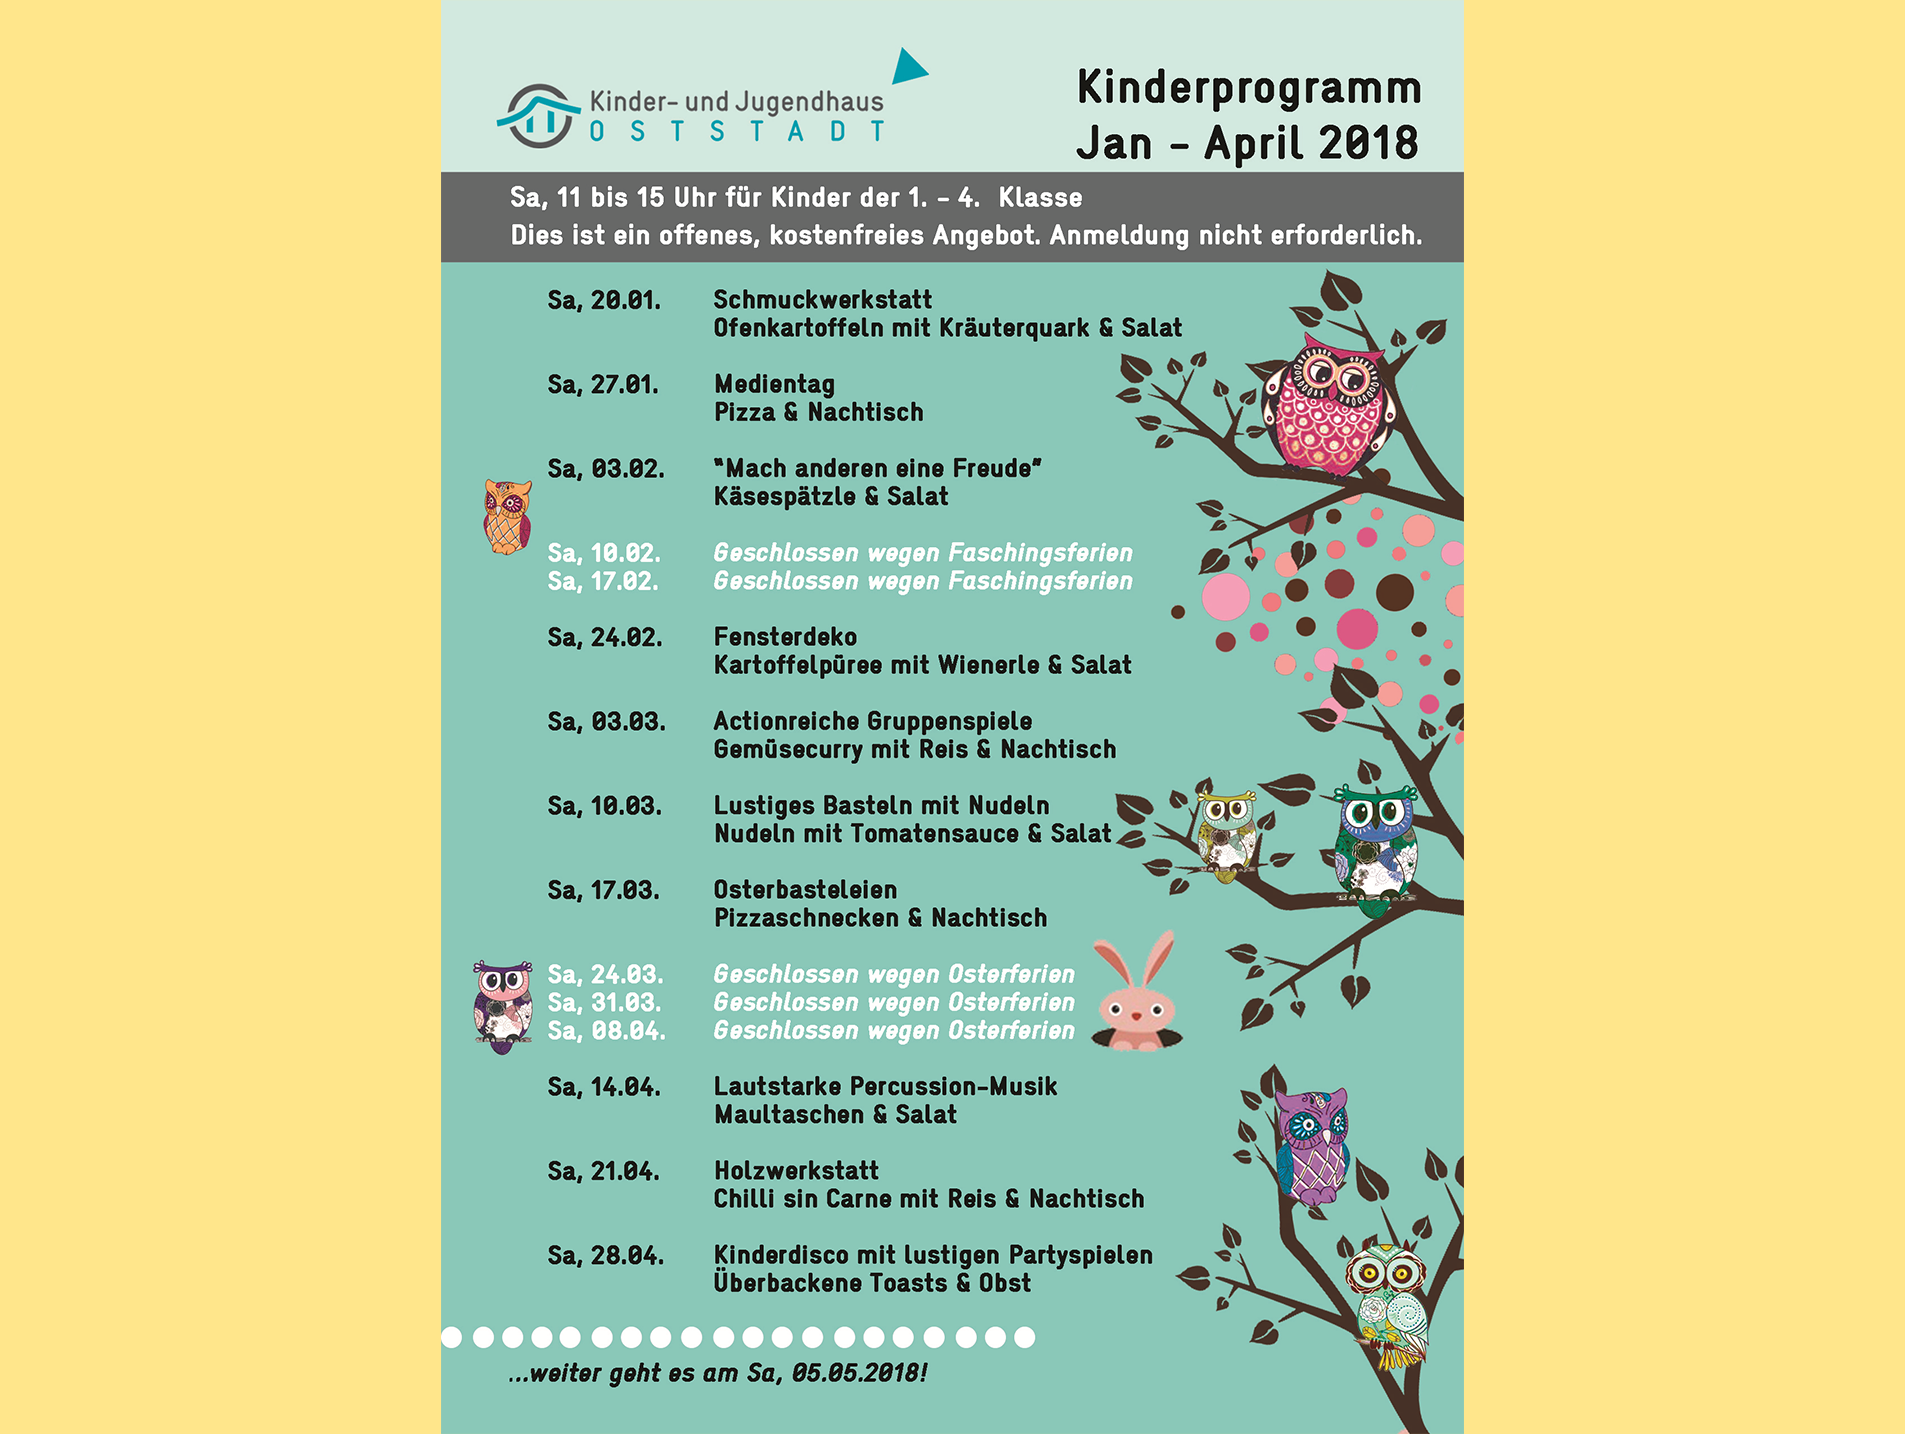 News Kinderprogramm Jan - April 2018